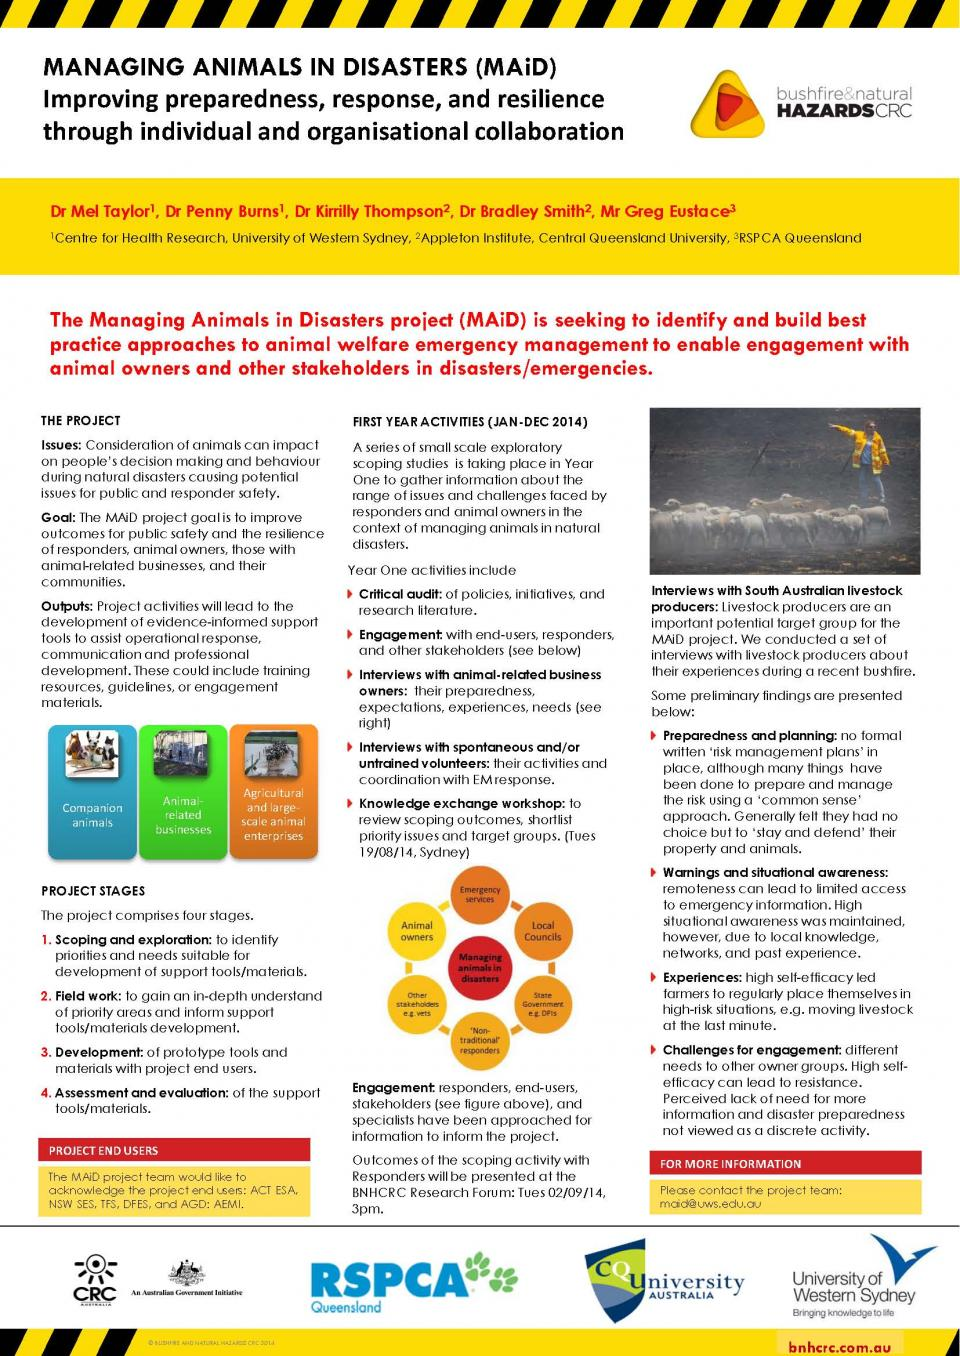 Managing animals in disasters (MAiD): Improving preparedness, response, and resilience through individual and organisational collaboration